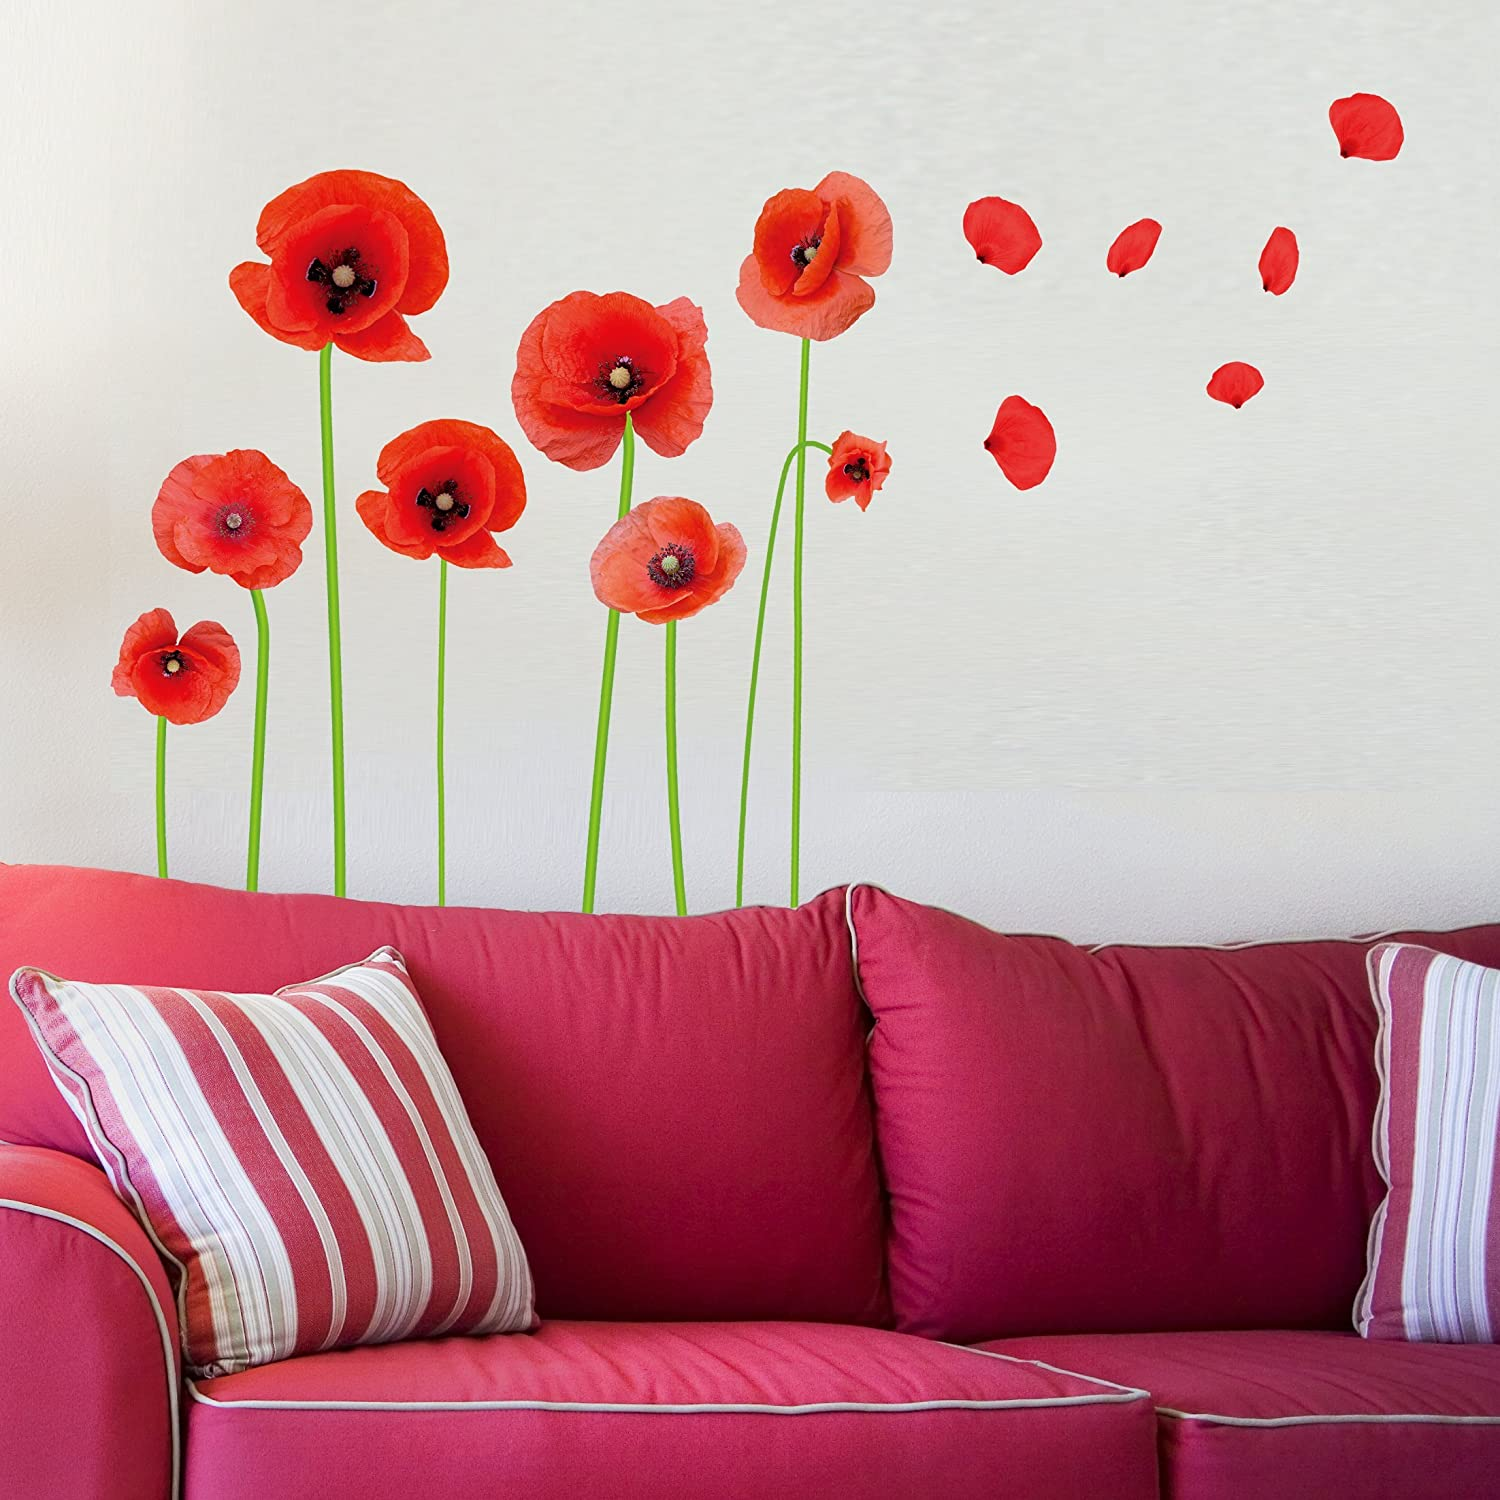 """Dnven (16""""w x 28""""h) DIY High Definition Red Poppies Beautiful Flowers Vines and Butterflies Vinyl Peel and Stick Wall Decals, Living Room Bedroom Children Room Nursery Removable"""